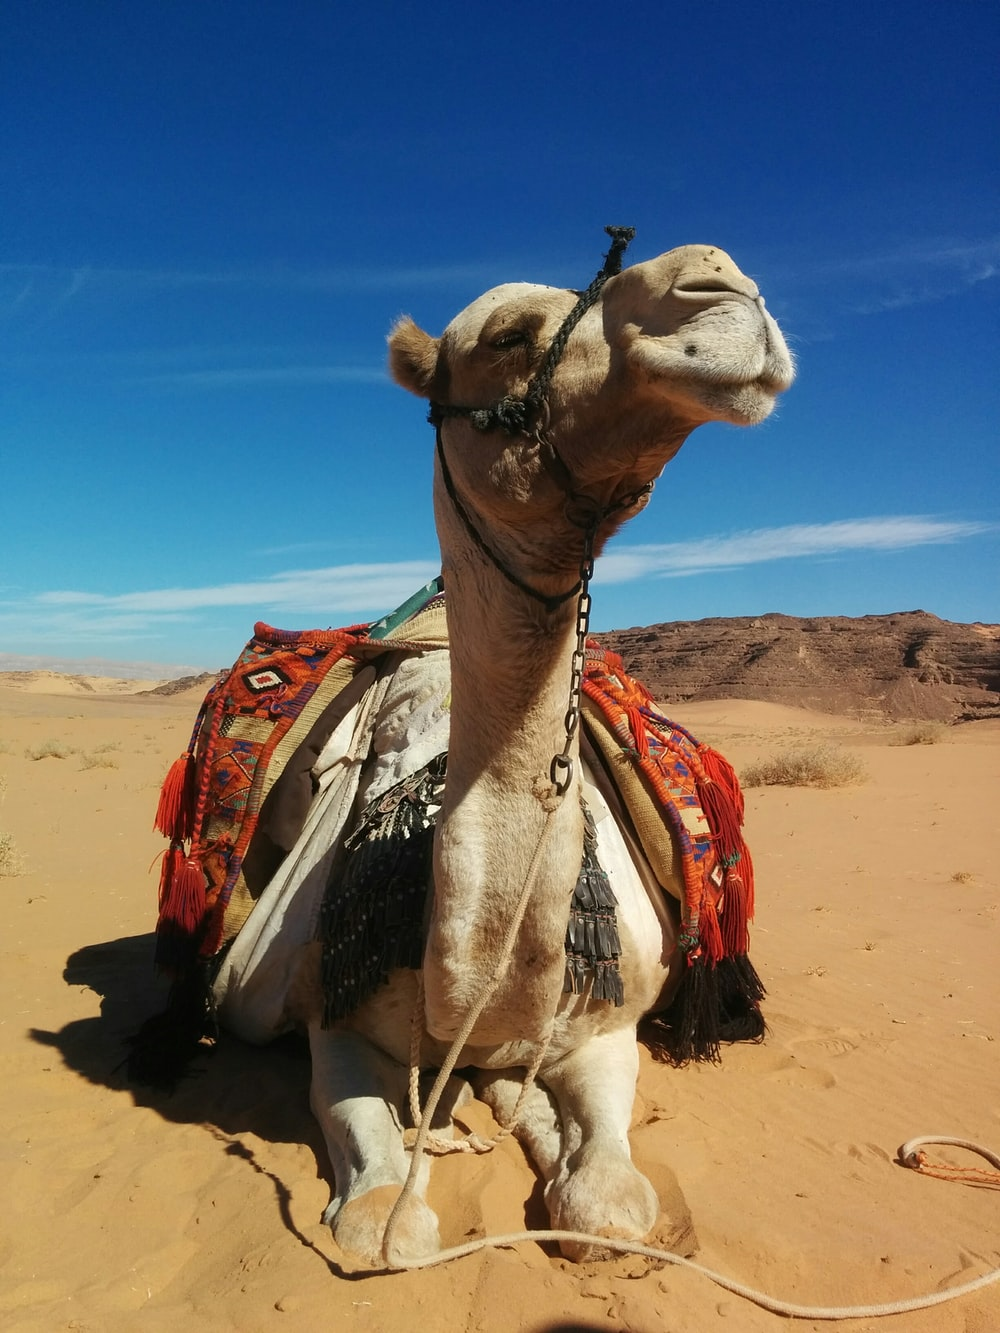 brown camel on brown sand during daytime